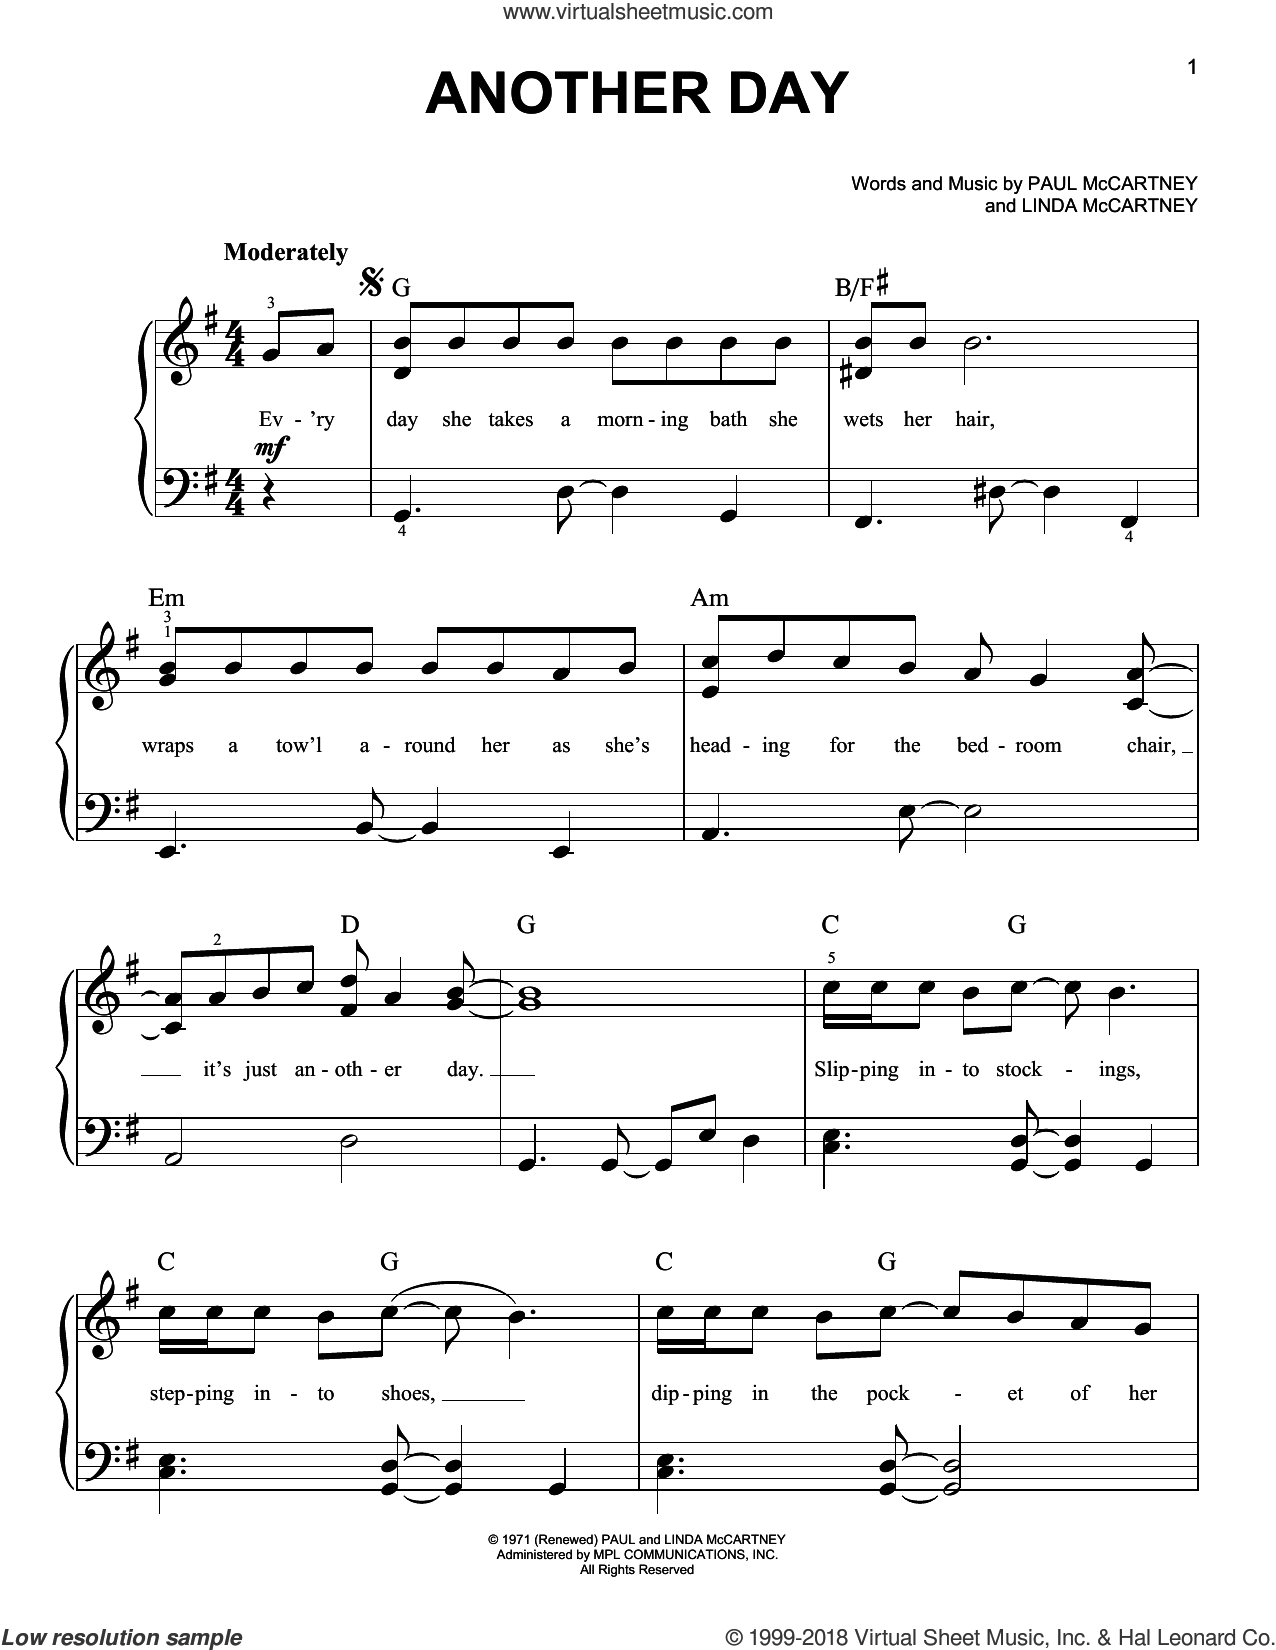 Another Day sheet music for piano solo by Paul McCartney and Linda McCartney, easy skill level